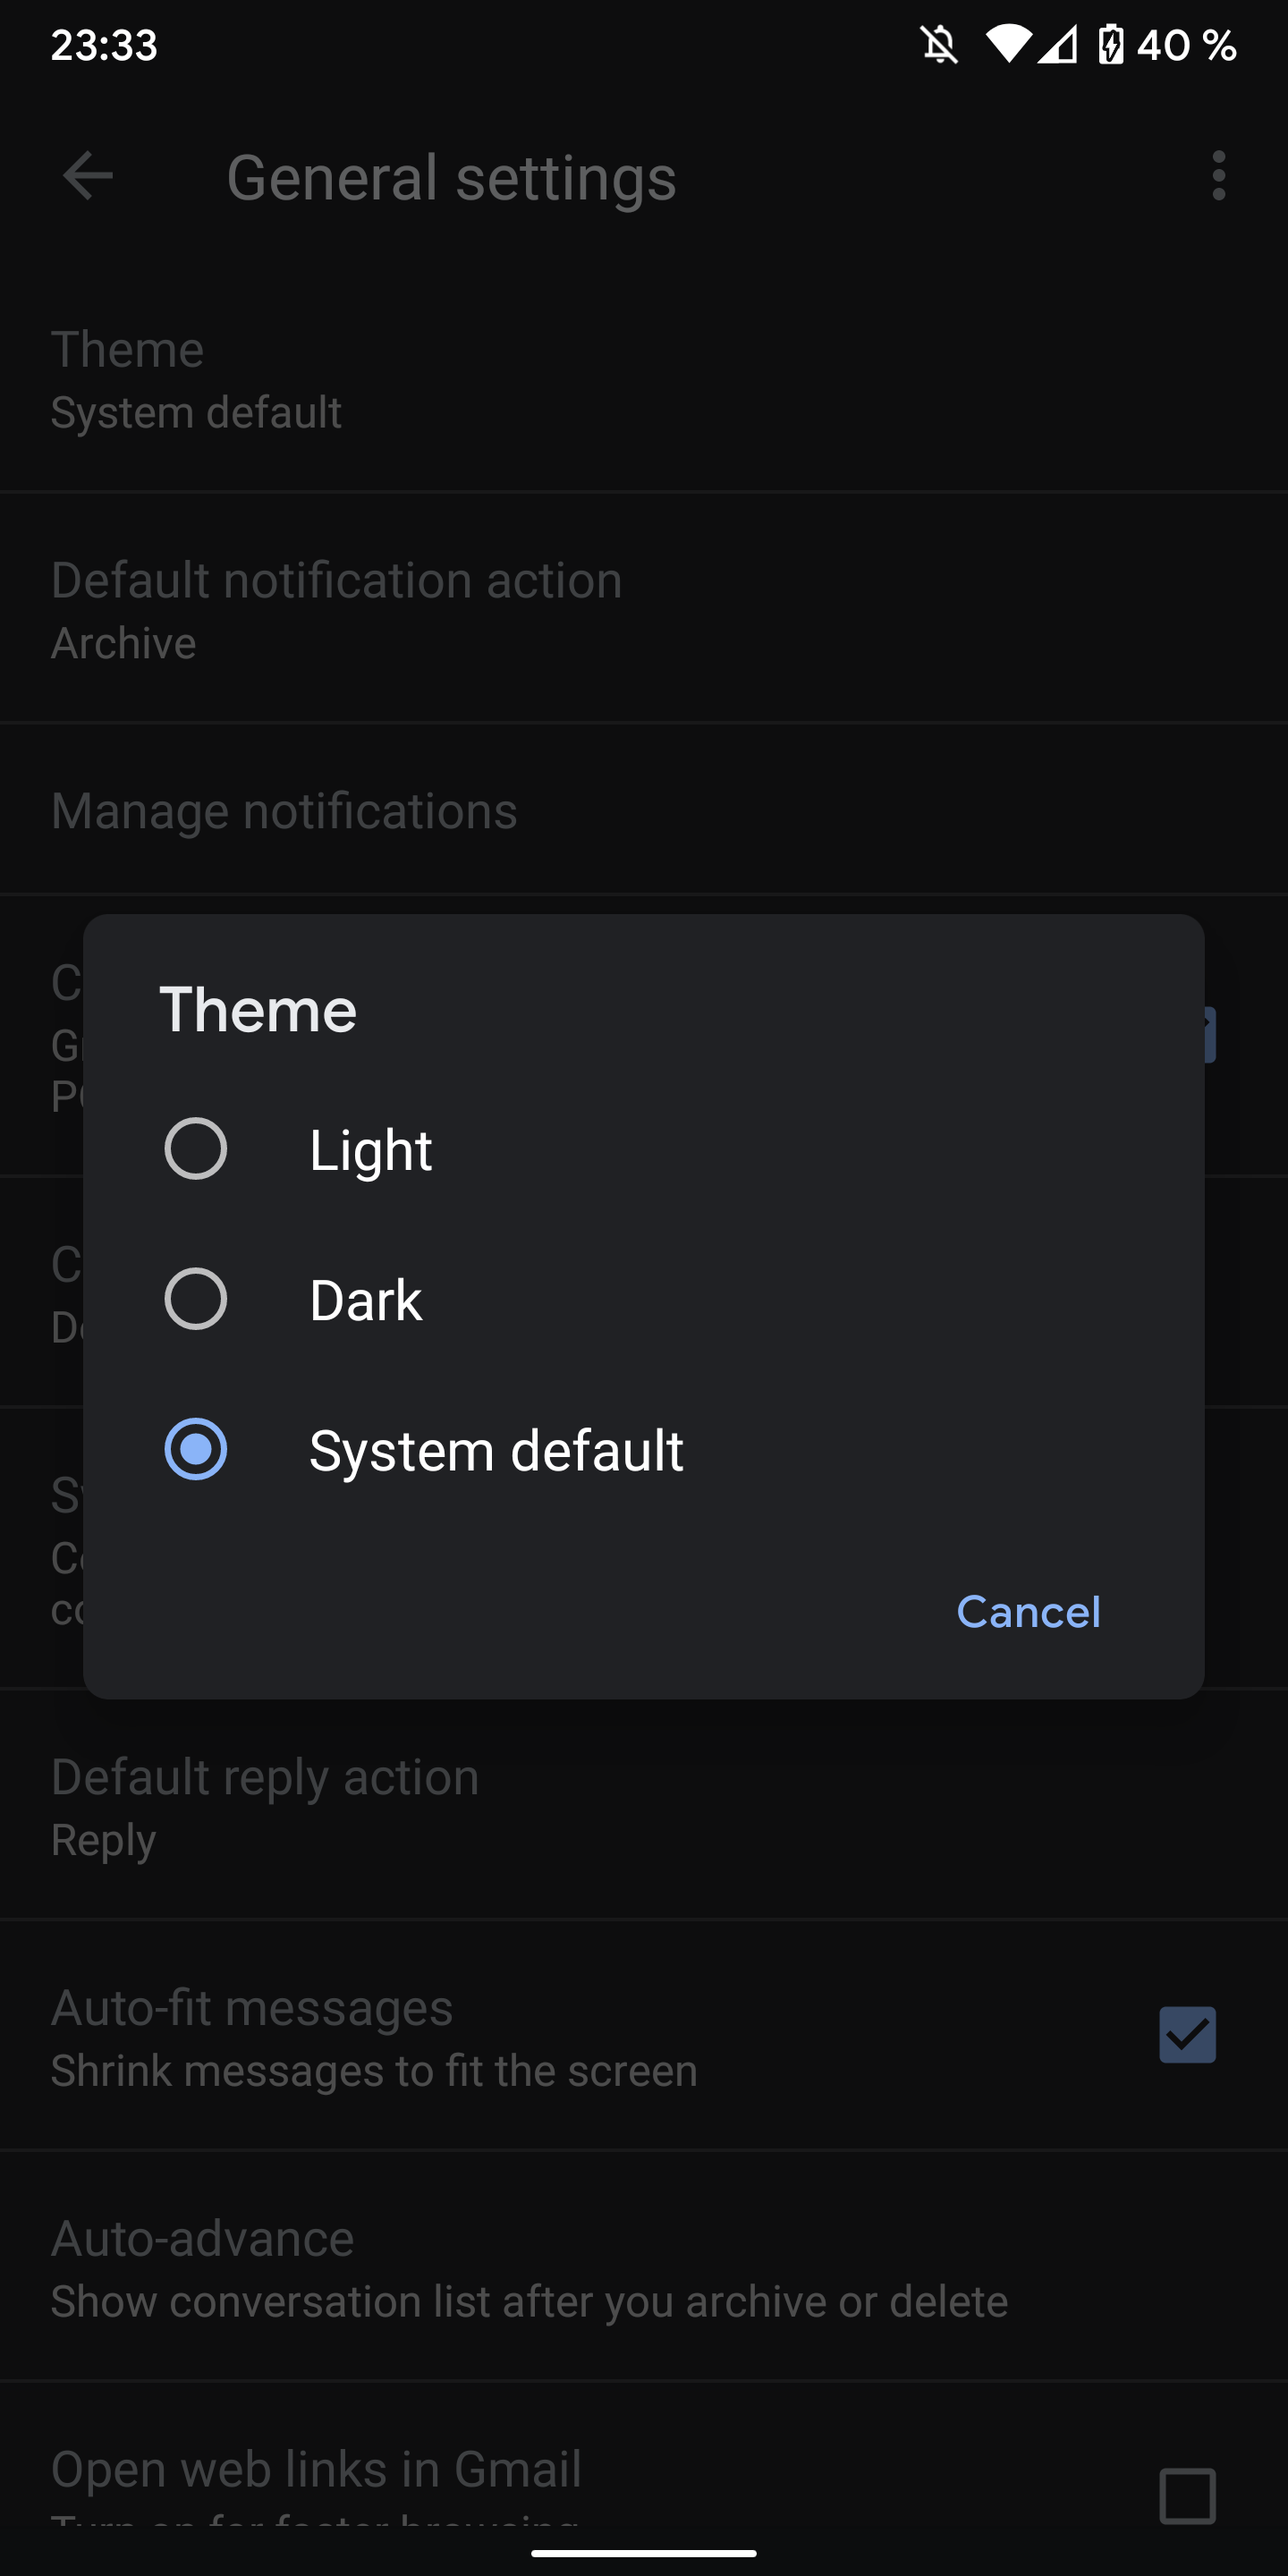 Google Releases Dark Mode For Gmail App On Android